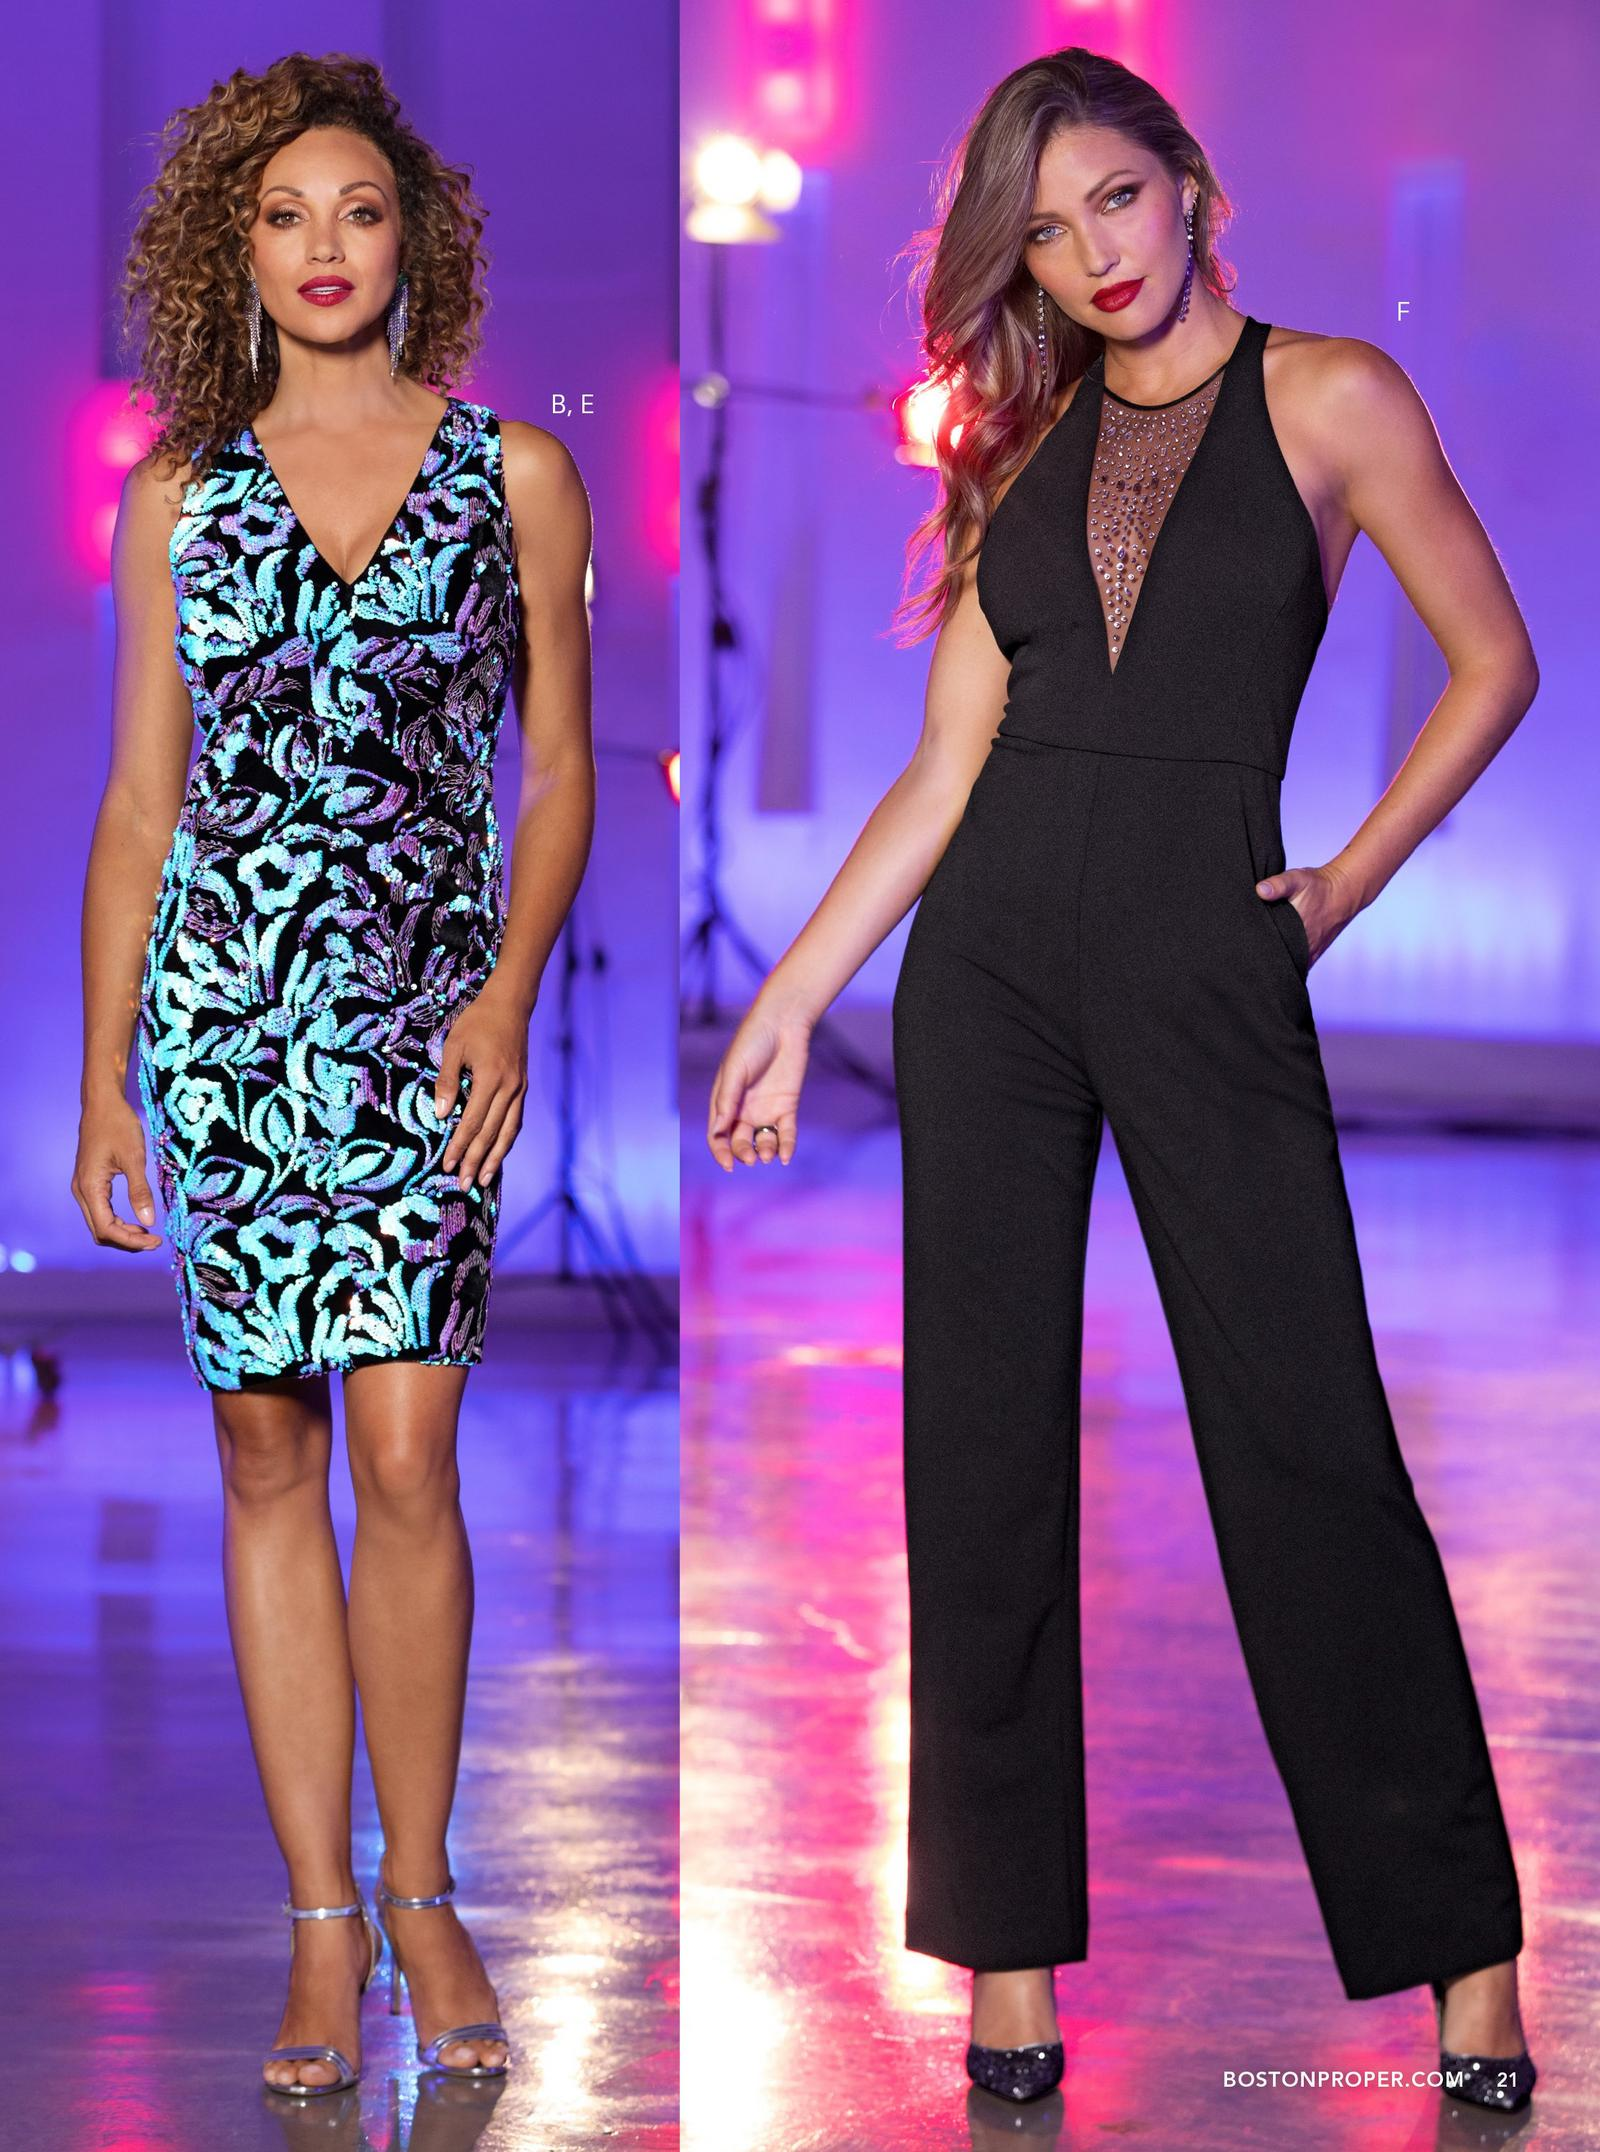 left model wearing iridescent sequin dress. right model wearing black jumpsuit with mesh jeweled inset.